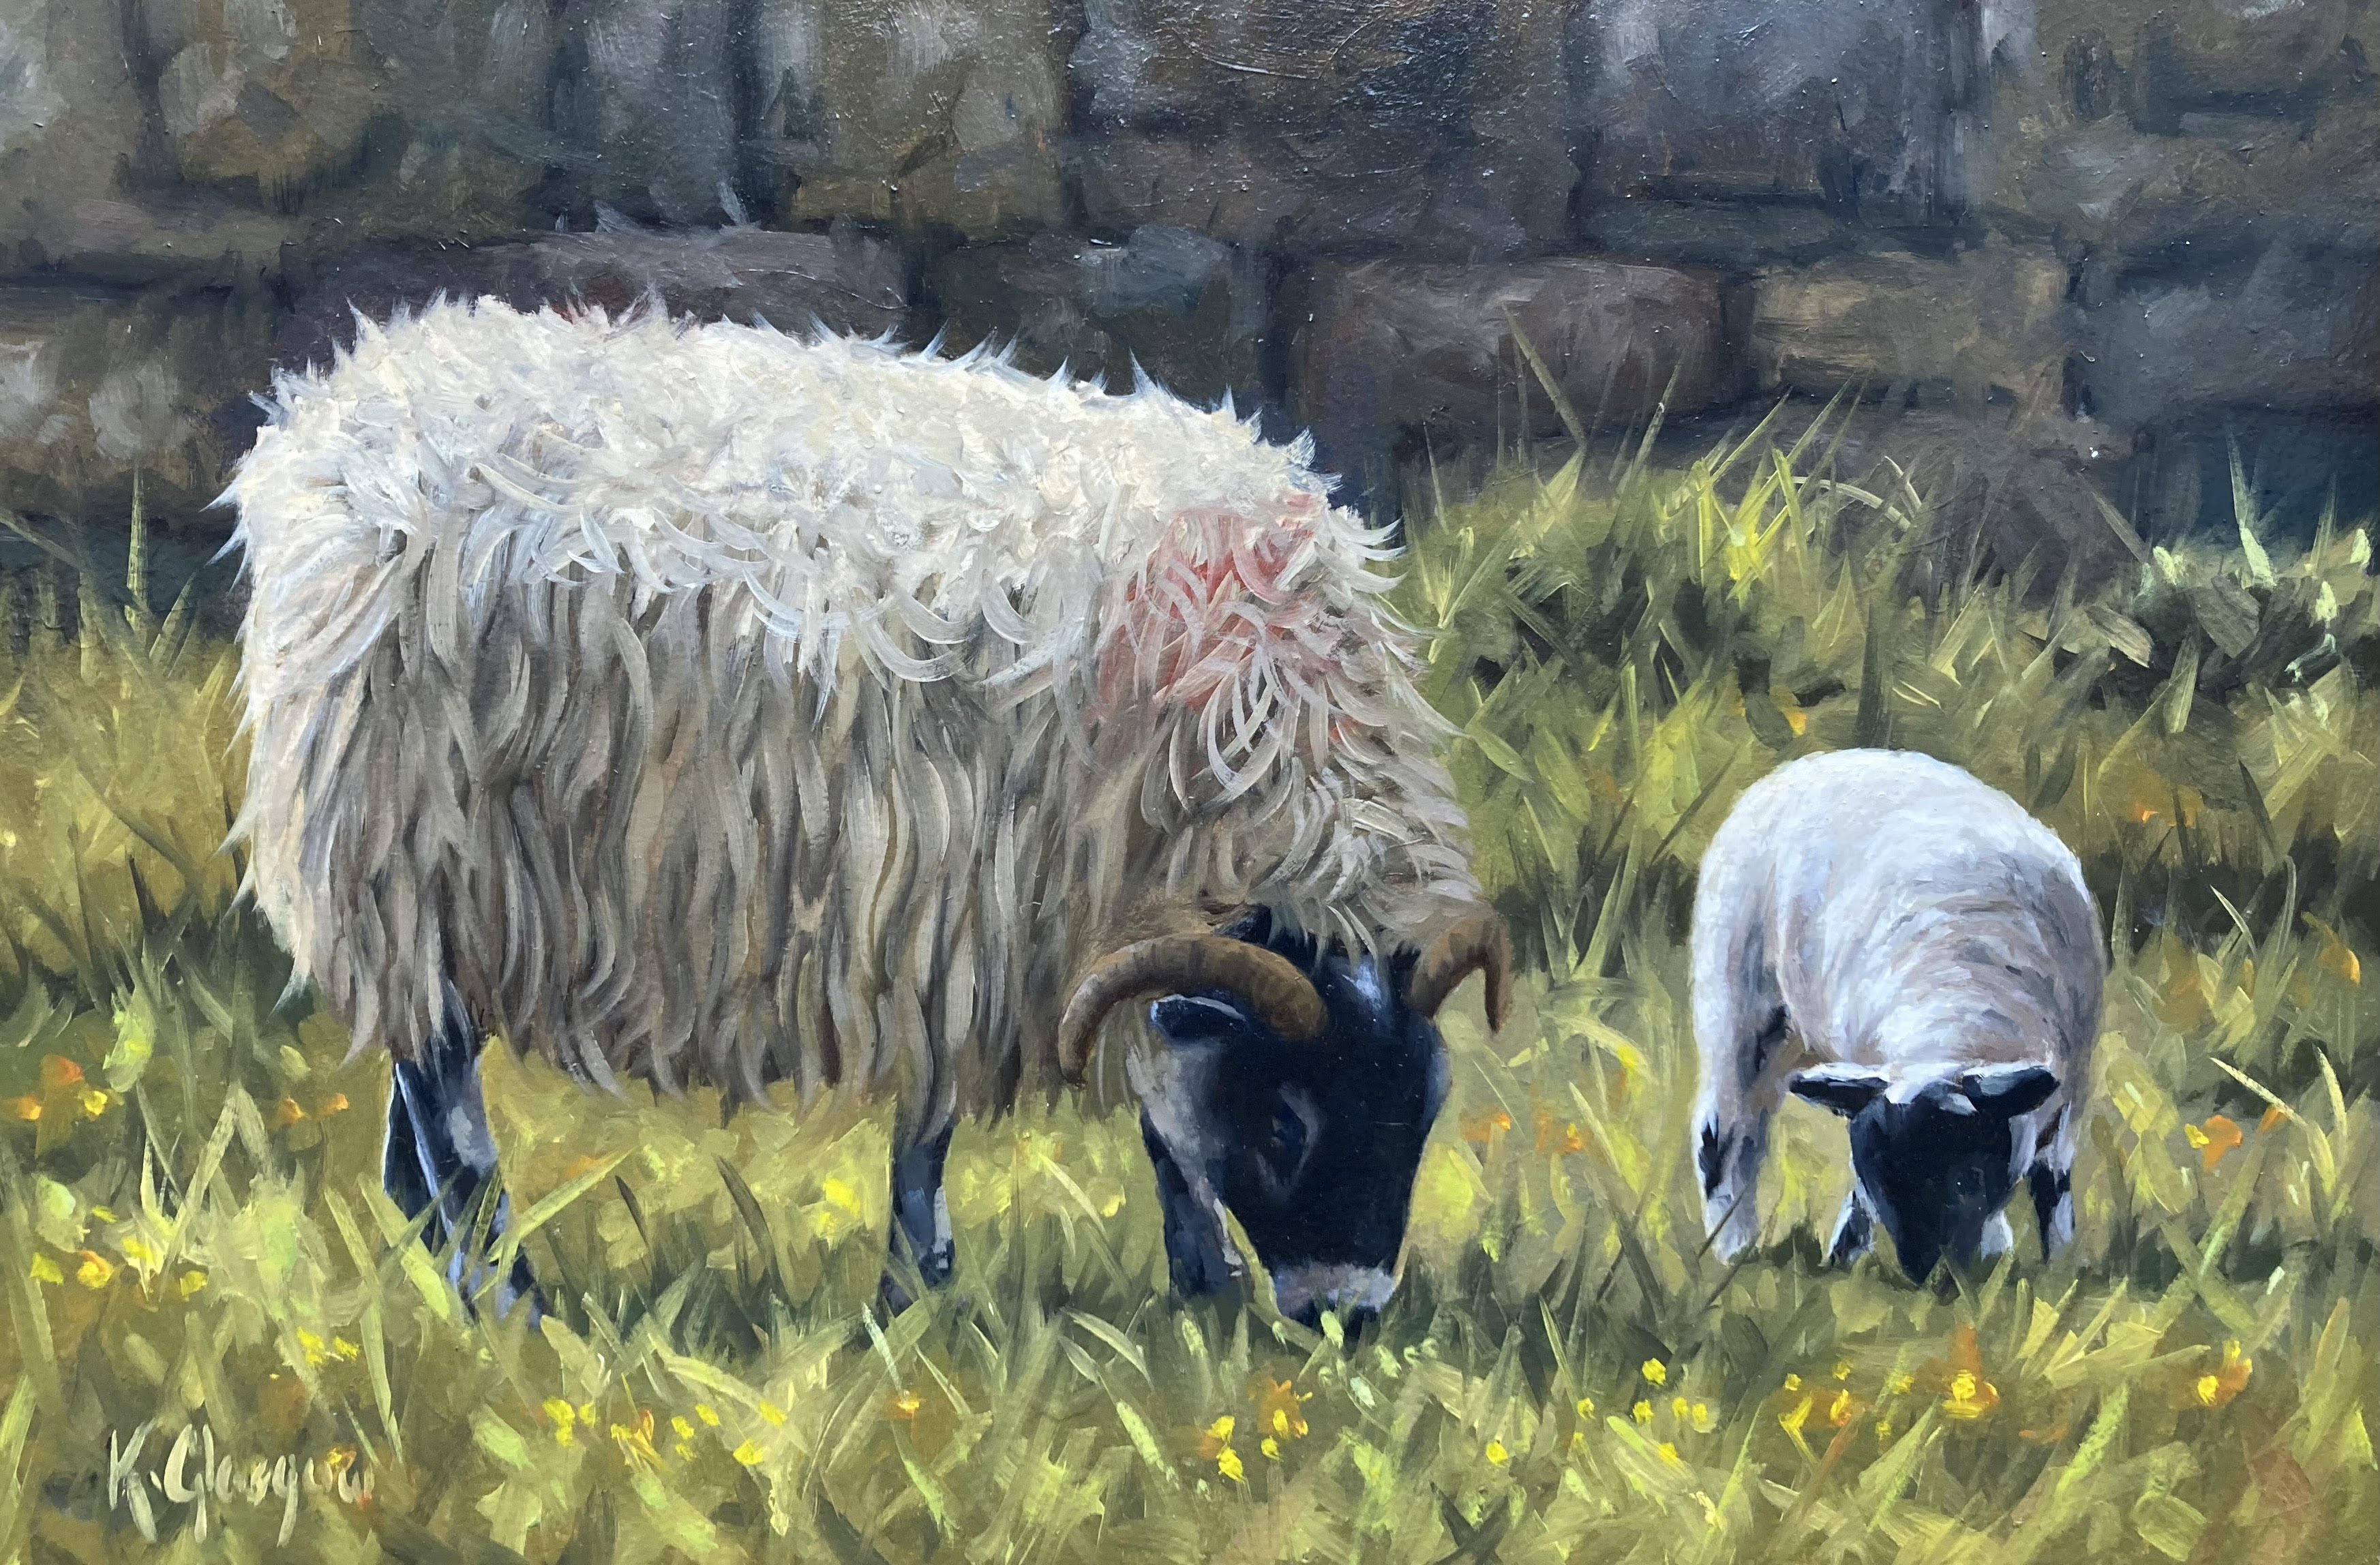 Ewe and Lambs 2 by Keith Glasgow